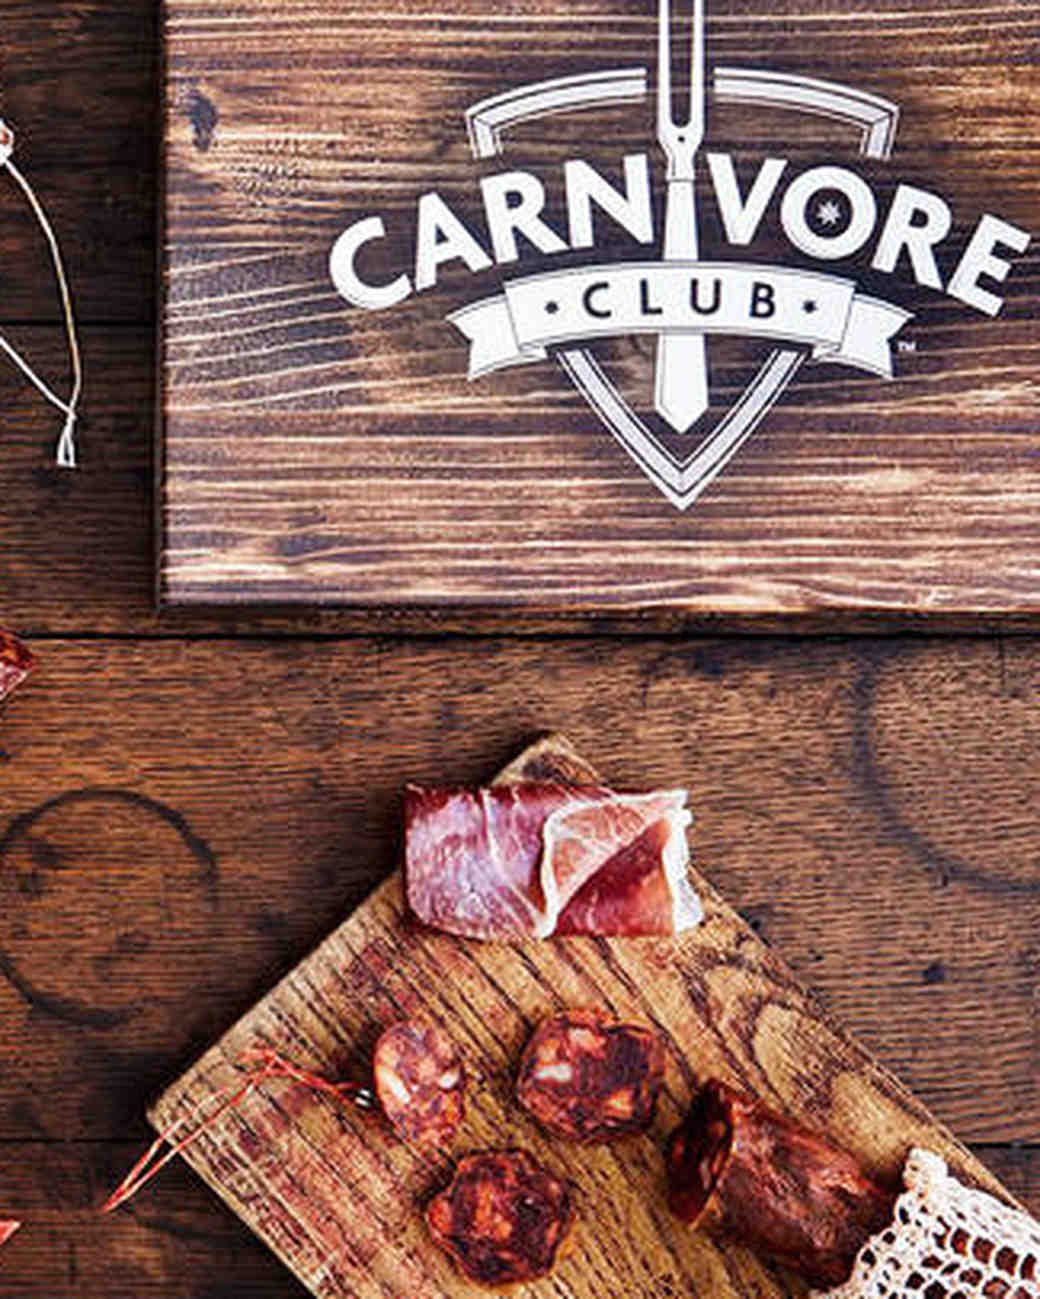 subscription-services-gift-carnivore-club-0516.jpg